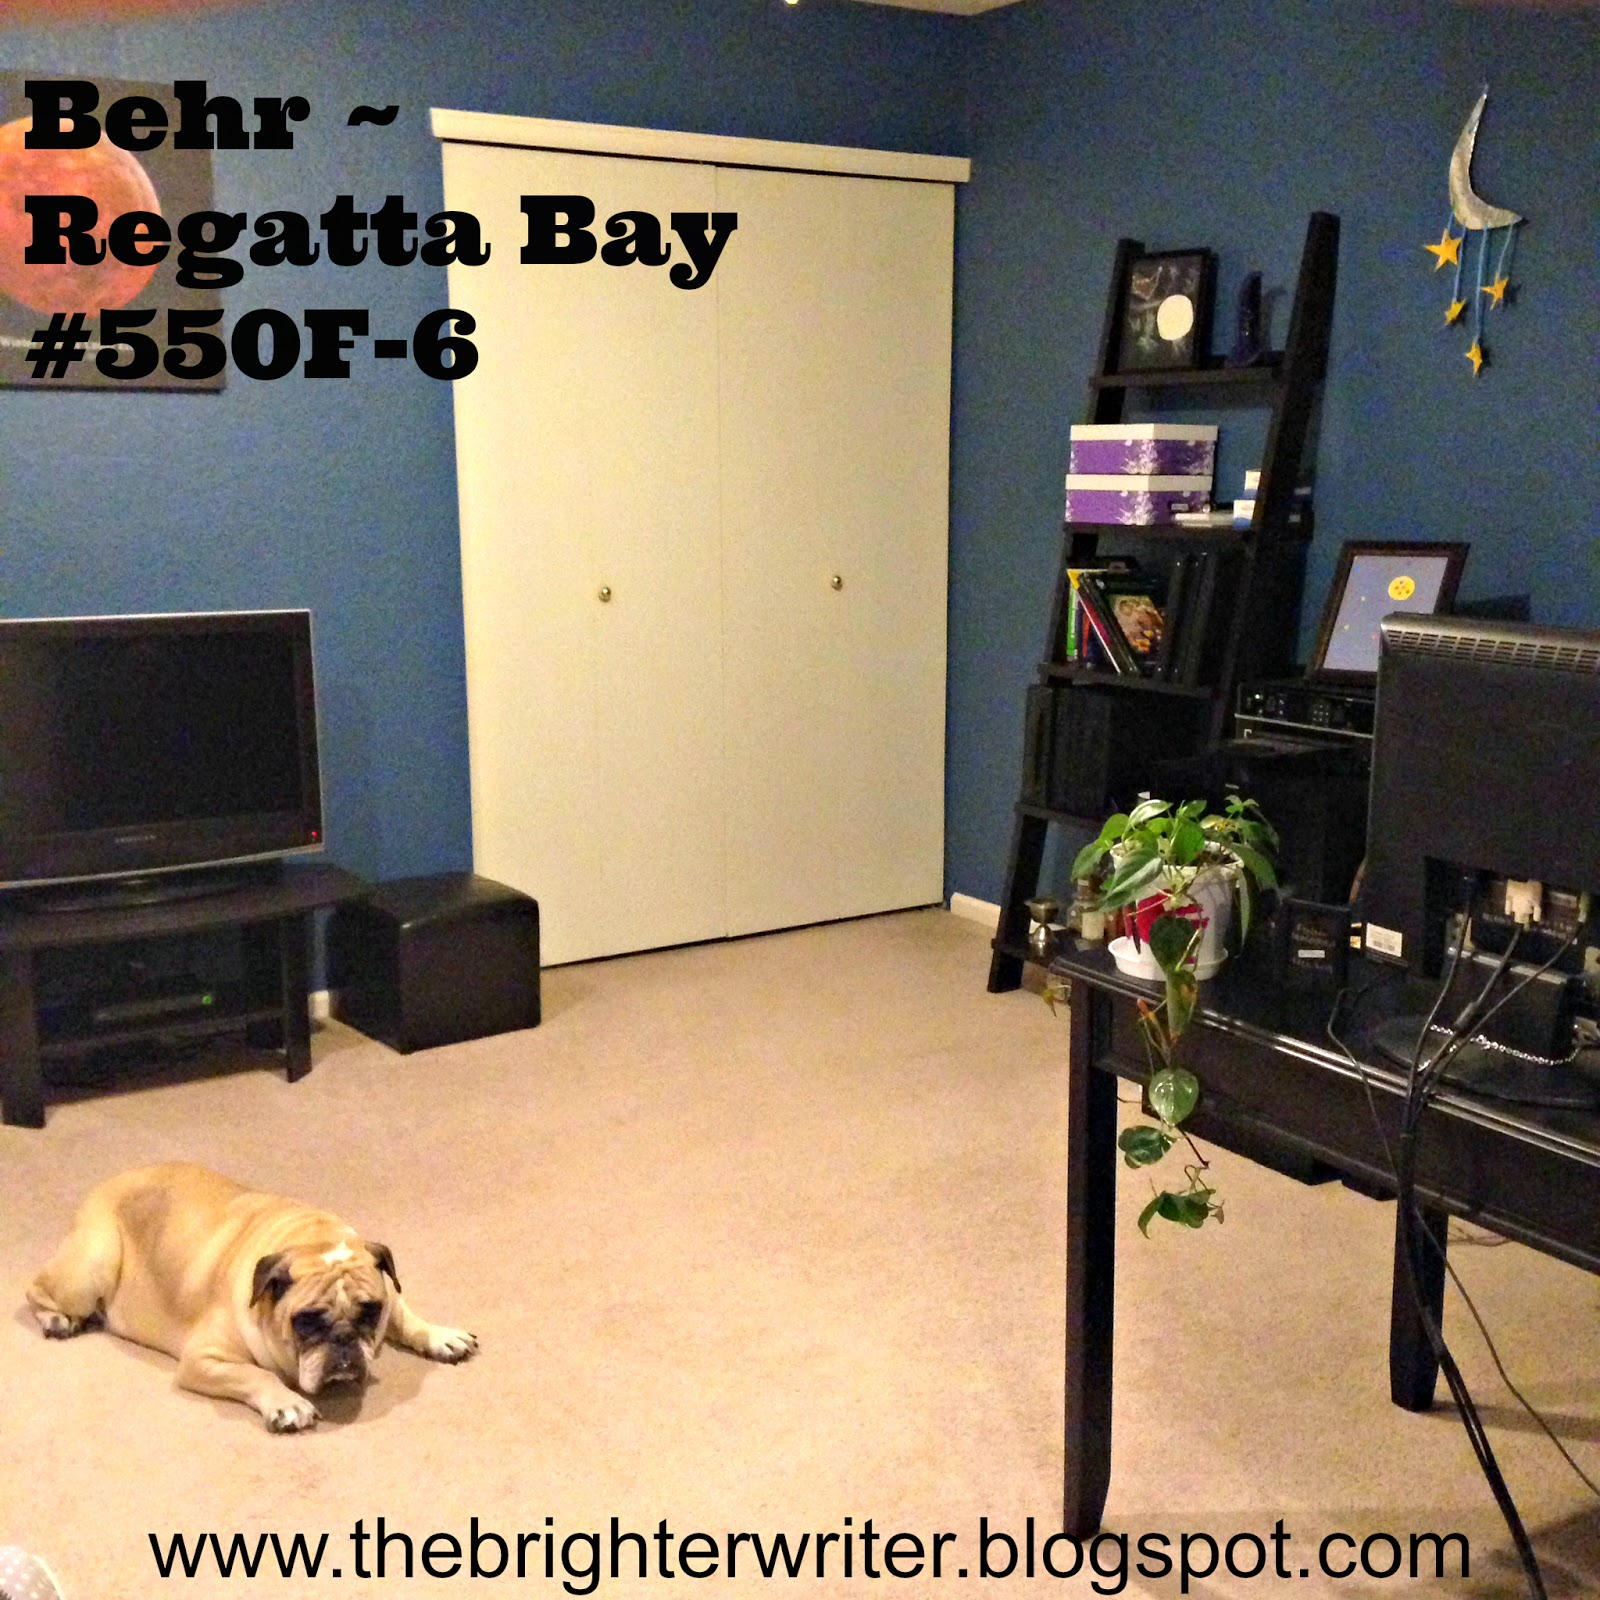 Behr - Regatta Bay #550f-6 Home Office Space www.thebrighterwriter.blogspot.com